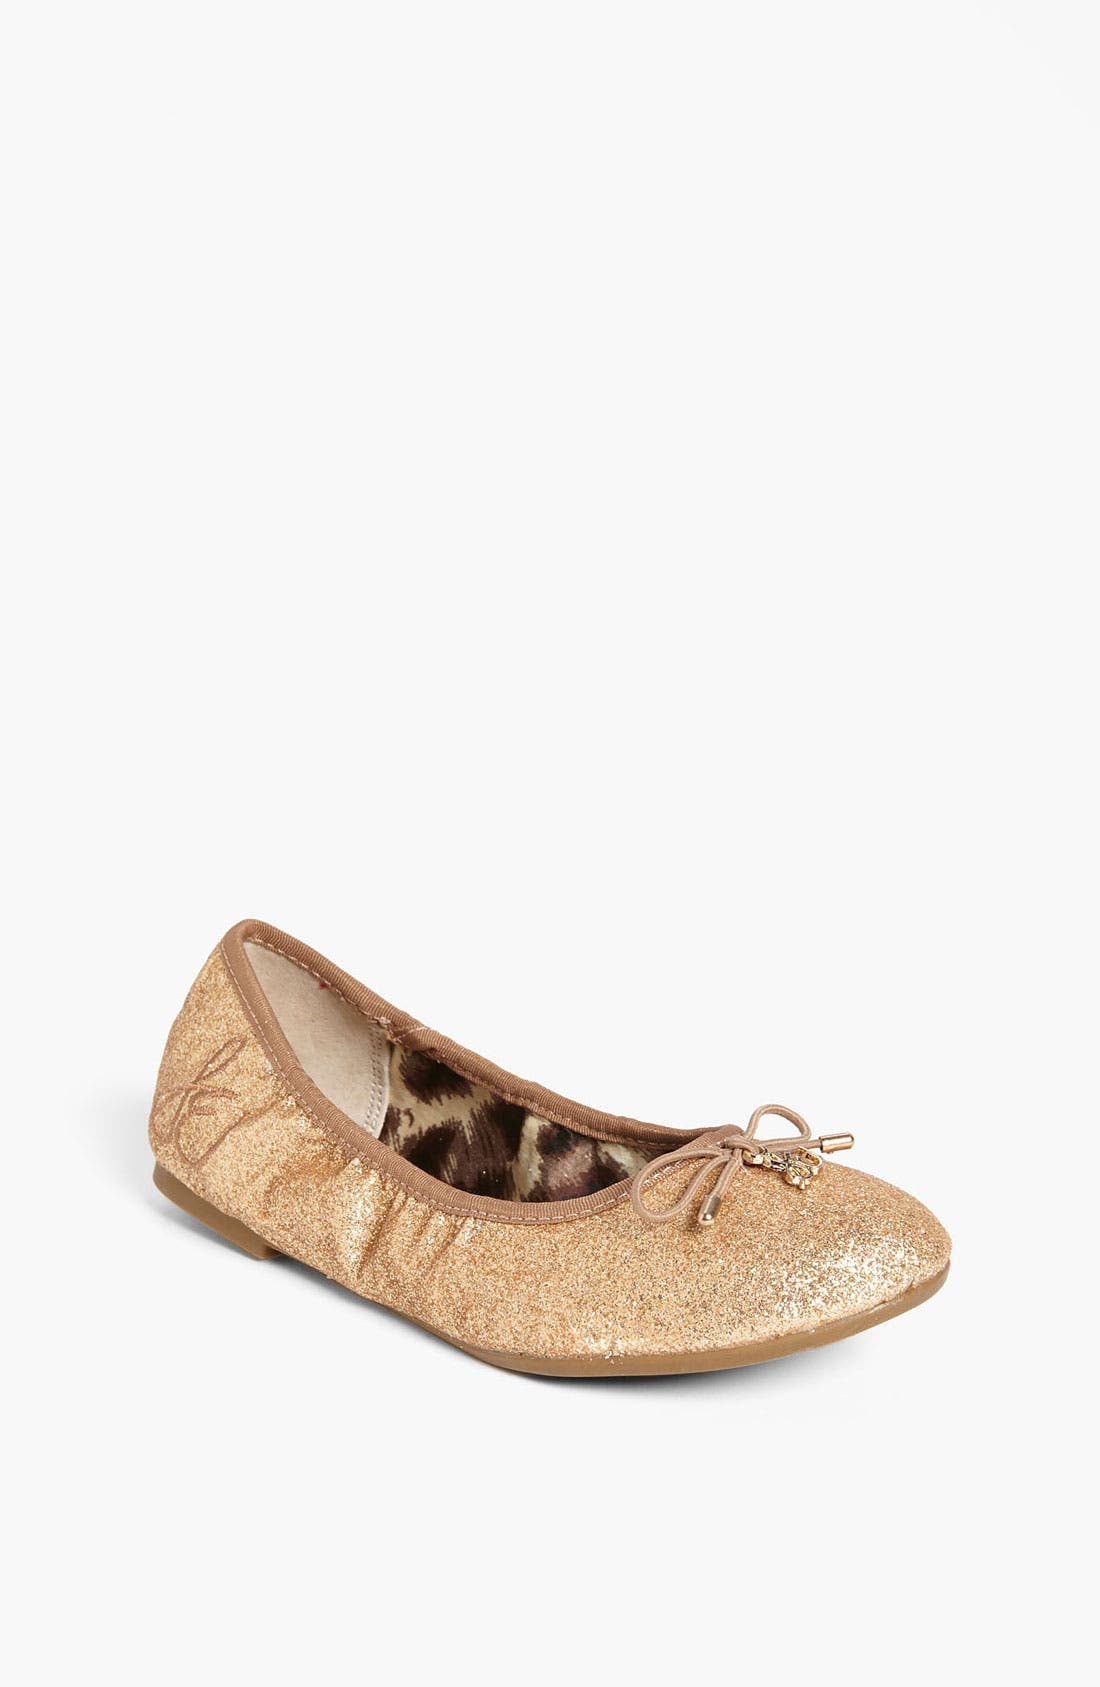 Alternate Image 1 Selected - Sam Edelman 'Fiona' Flat (Little Kid & Big Kid)